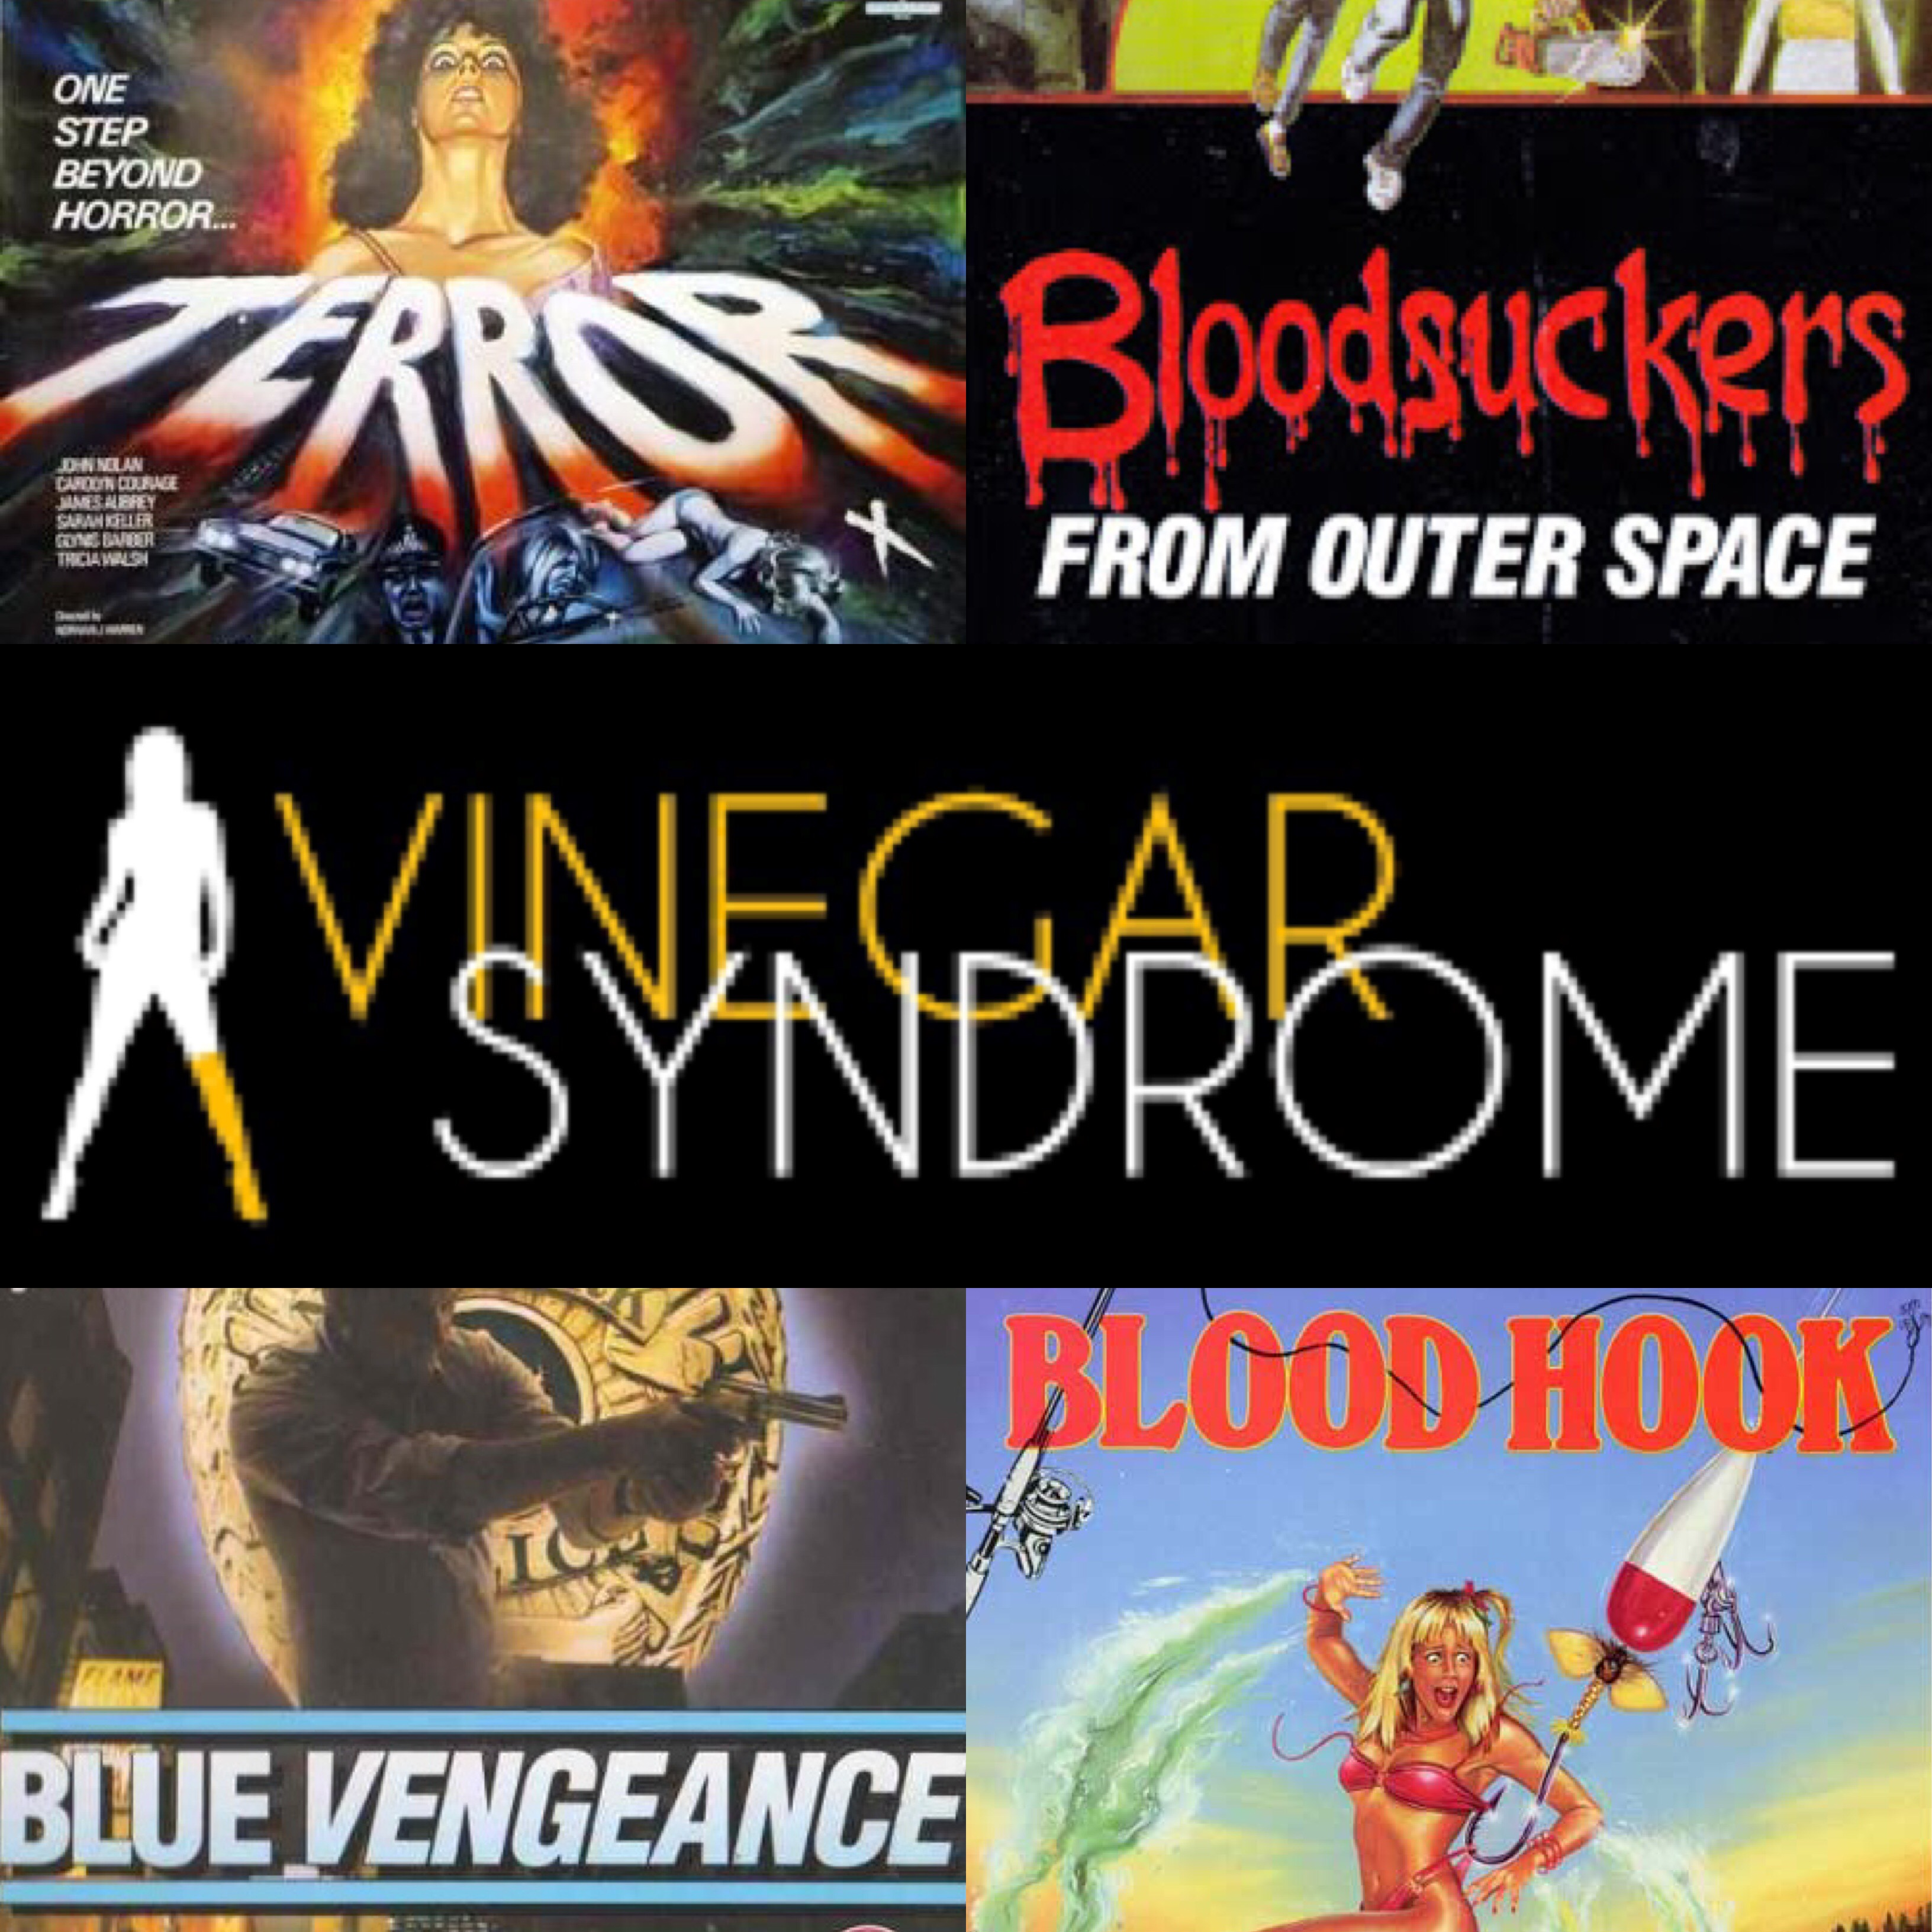 Terror Of The Blood Hooks From Outer Space